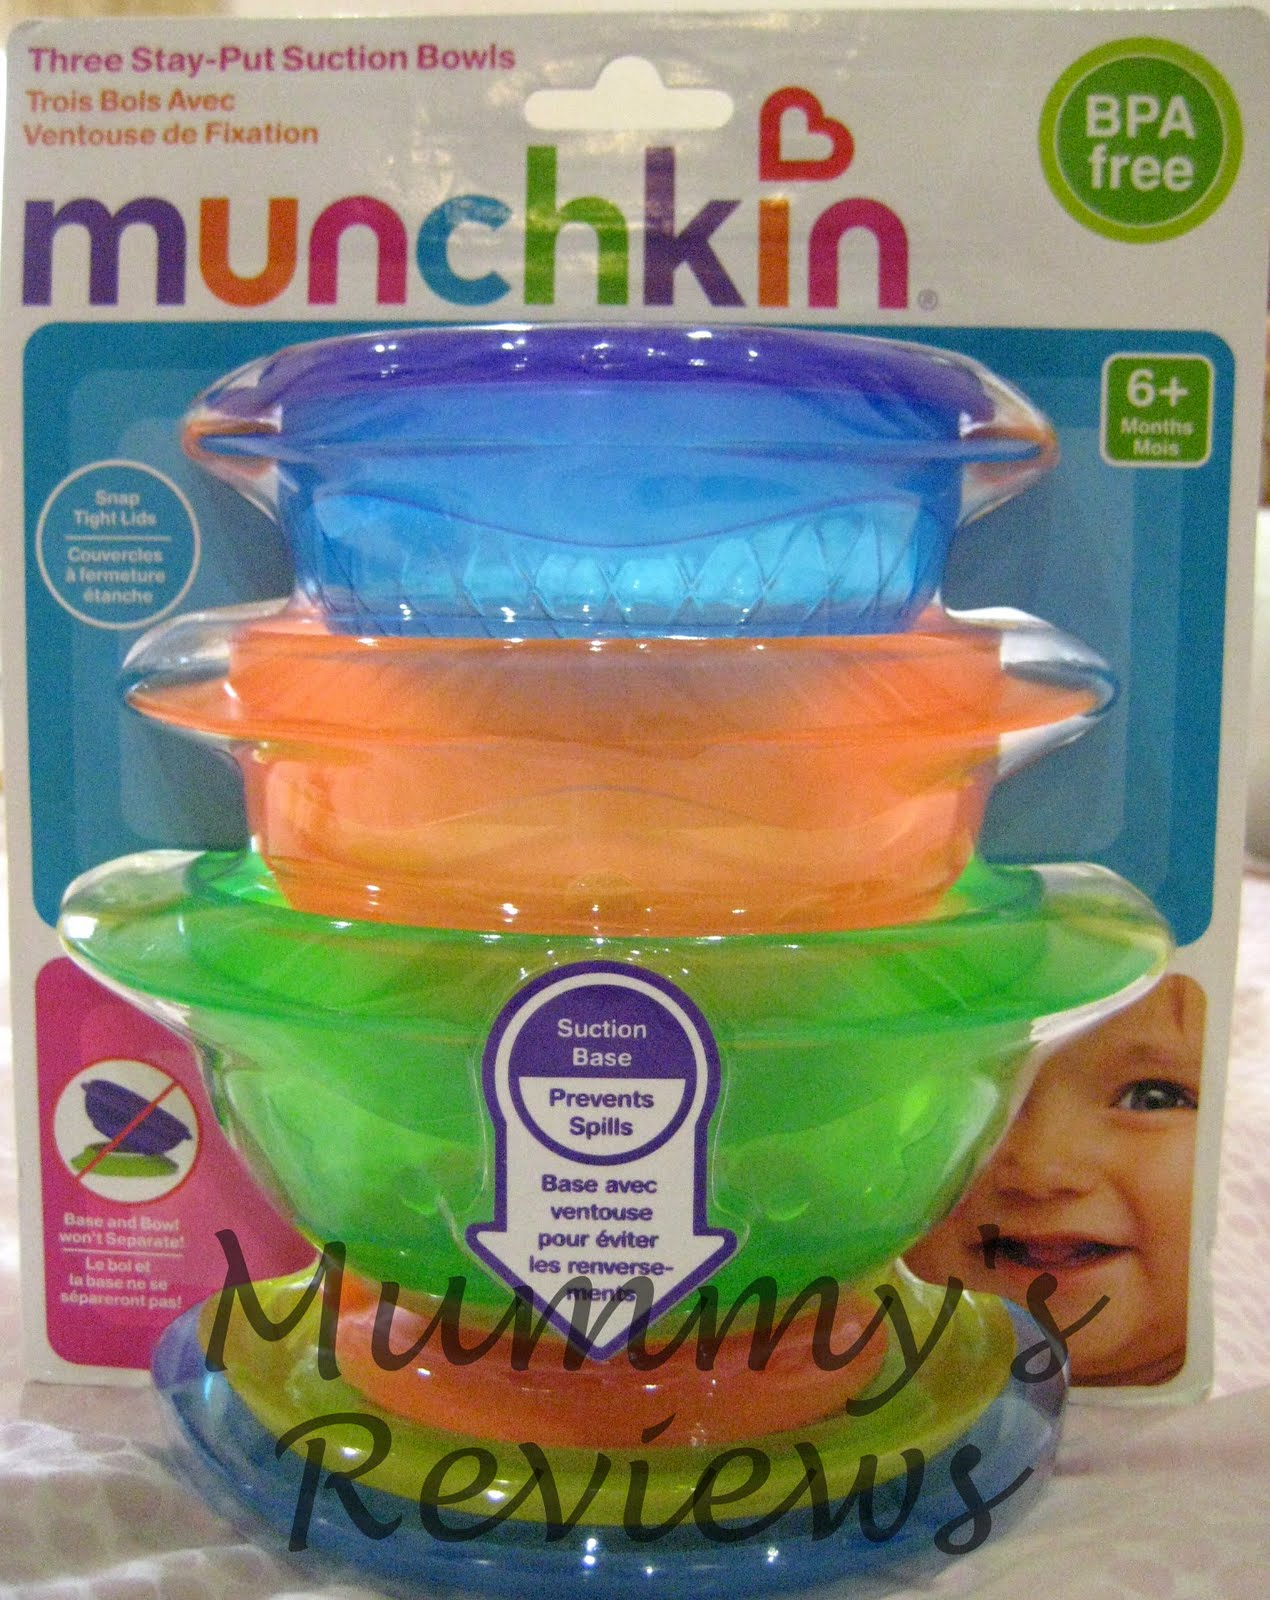 I was bringing Baby Vu0027s lunch to the dining area when his Daddy suggested that his bowl ought to have a lid to ensure hygiene. Good idea!  sc 1 st  Mummyu0027s Reviews & Review: Munchkin Stay-Put Bowls | Mummyu0027s Reviews